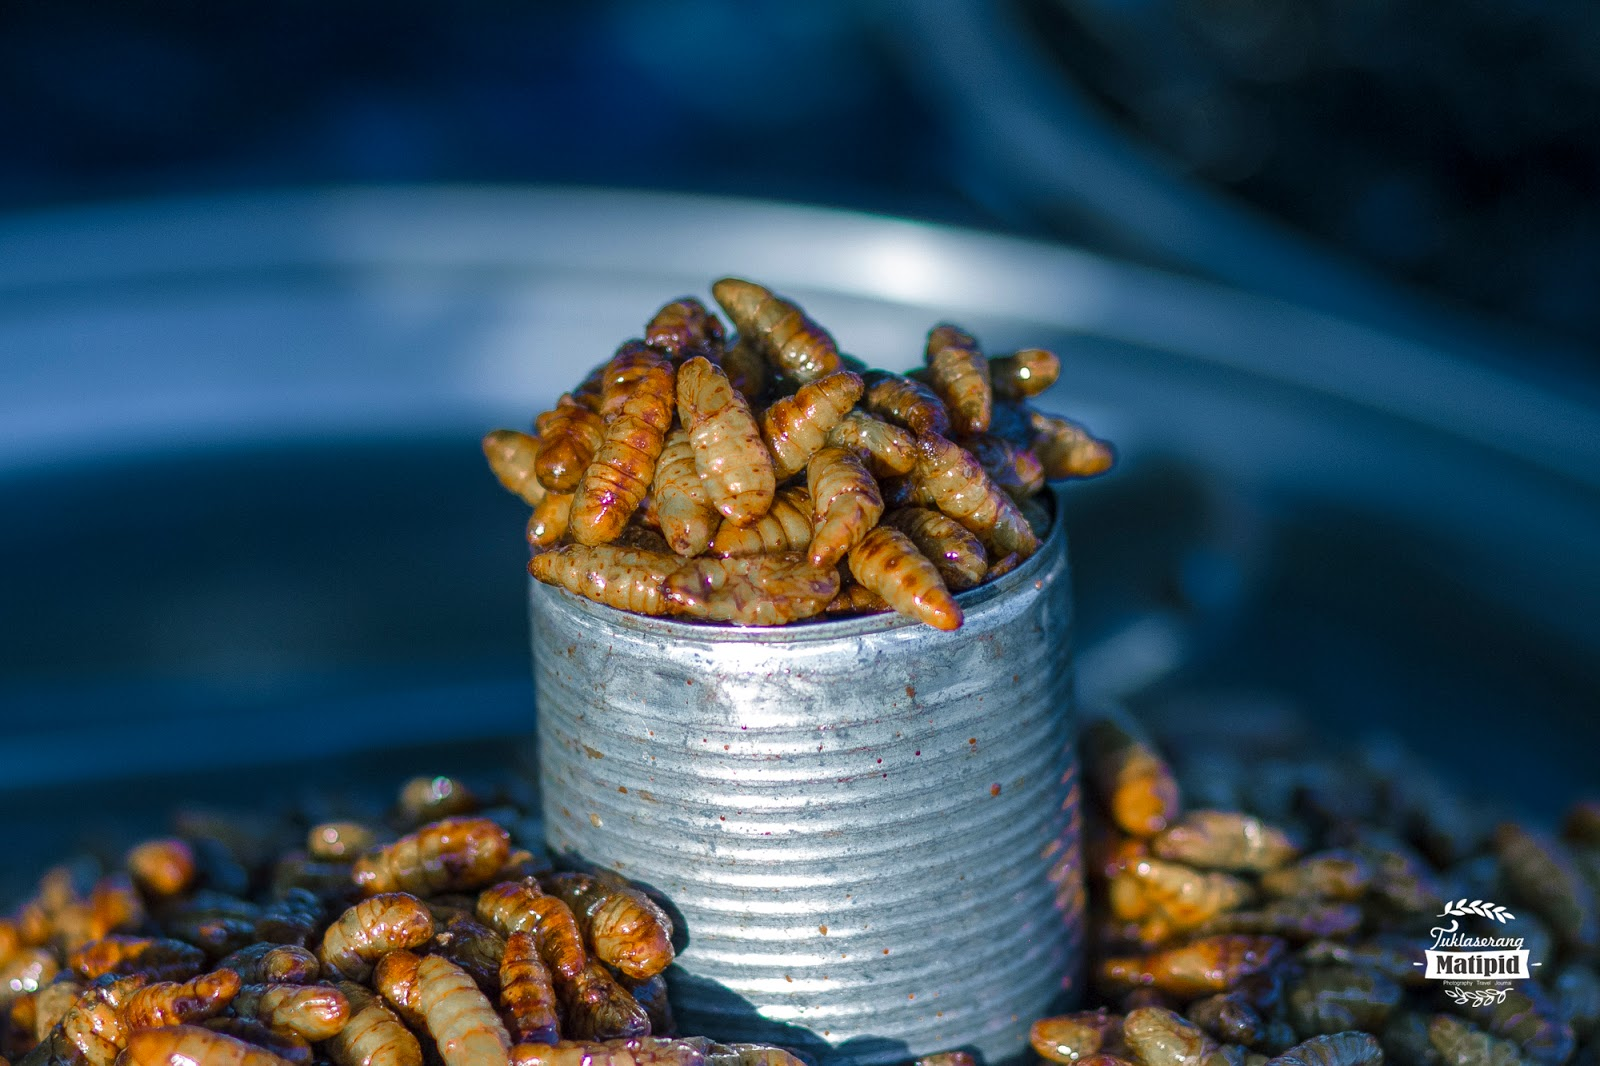 Silkworms pupae